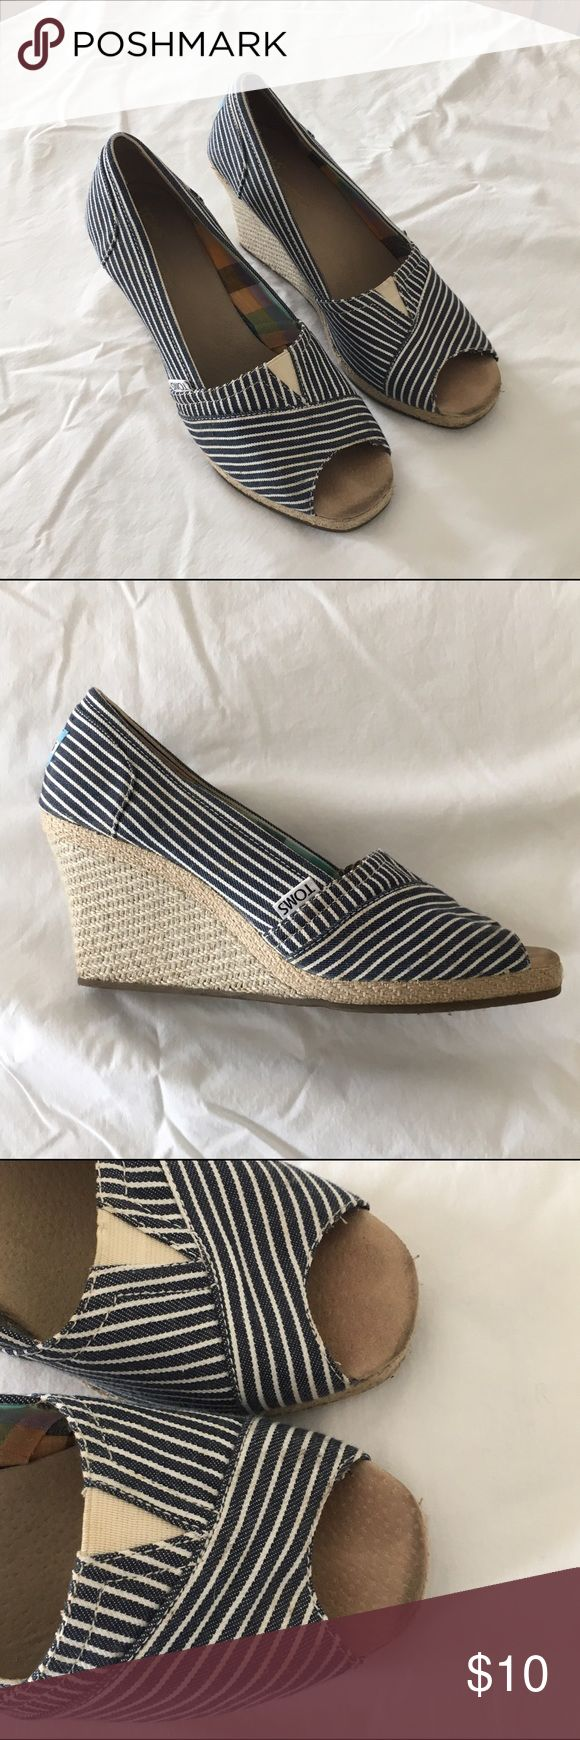 TOMS striped wedges Navy and tan striped canvas wedges with woven straw detailing. Slight scuffing on edge of toes shown in pic. Used condition. TOMS Shoes Wedges